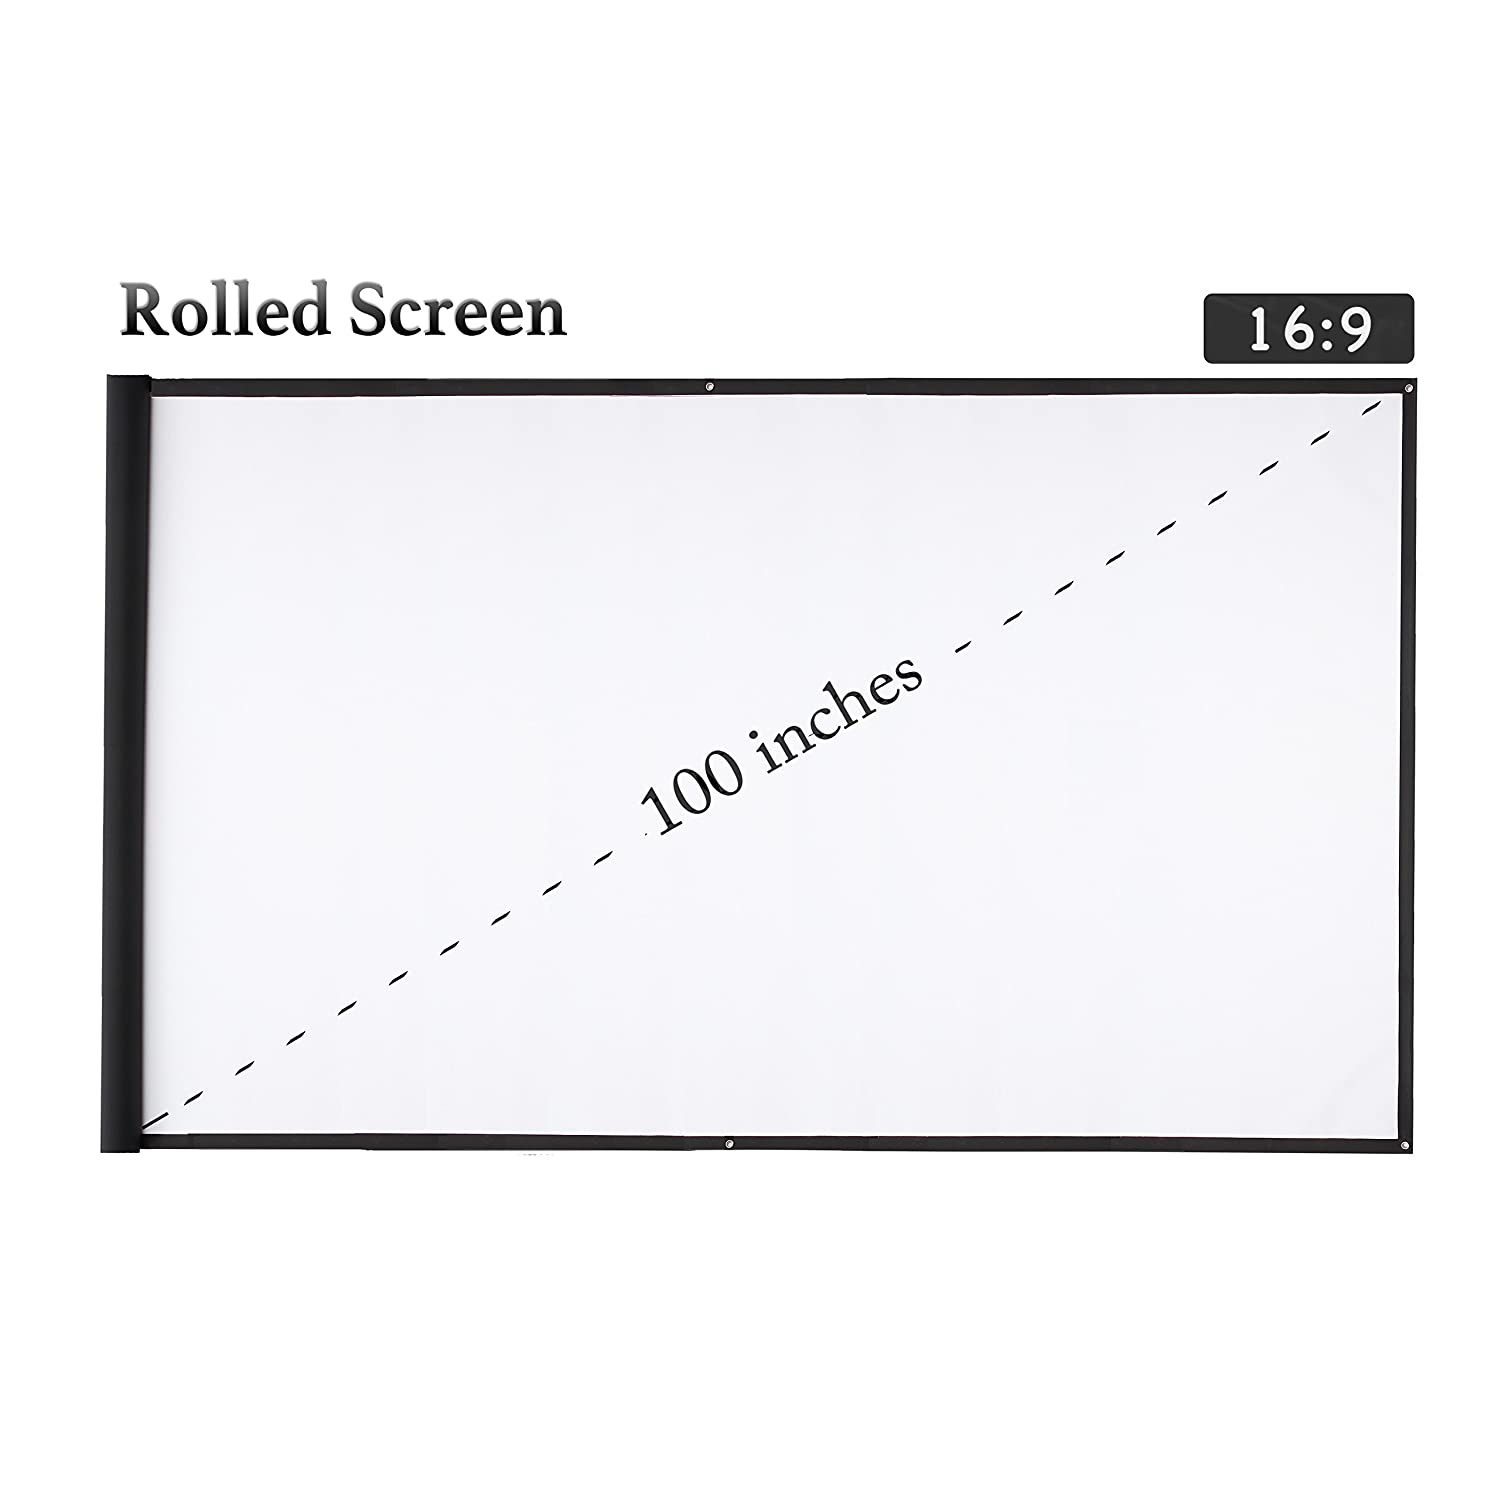 Varmax Video Projector Screen 100 inch Portable Rolled Package, Anti-Crease White Projection Movie Screen for Home Movie Night and Powerpoint Presentation 16:9